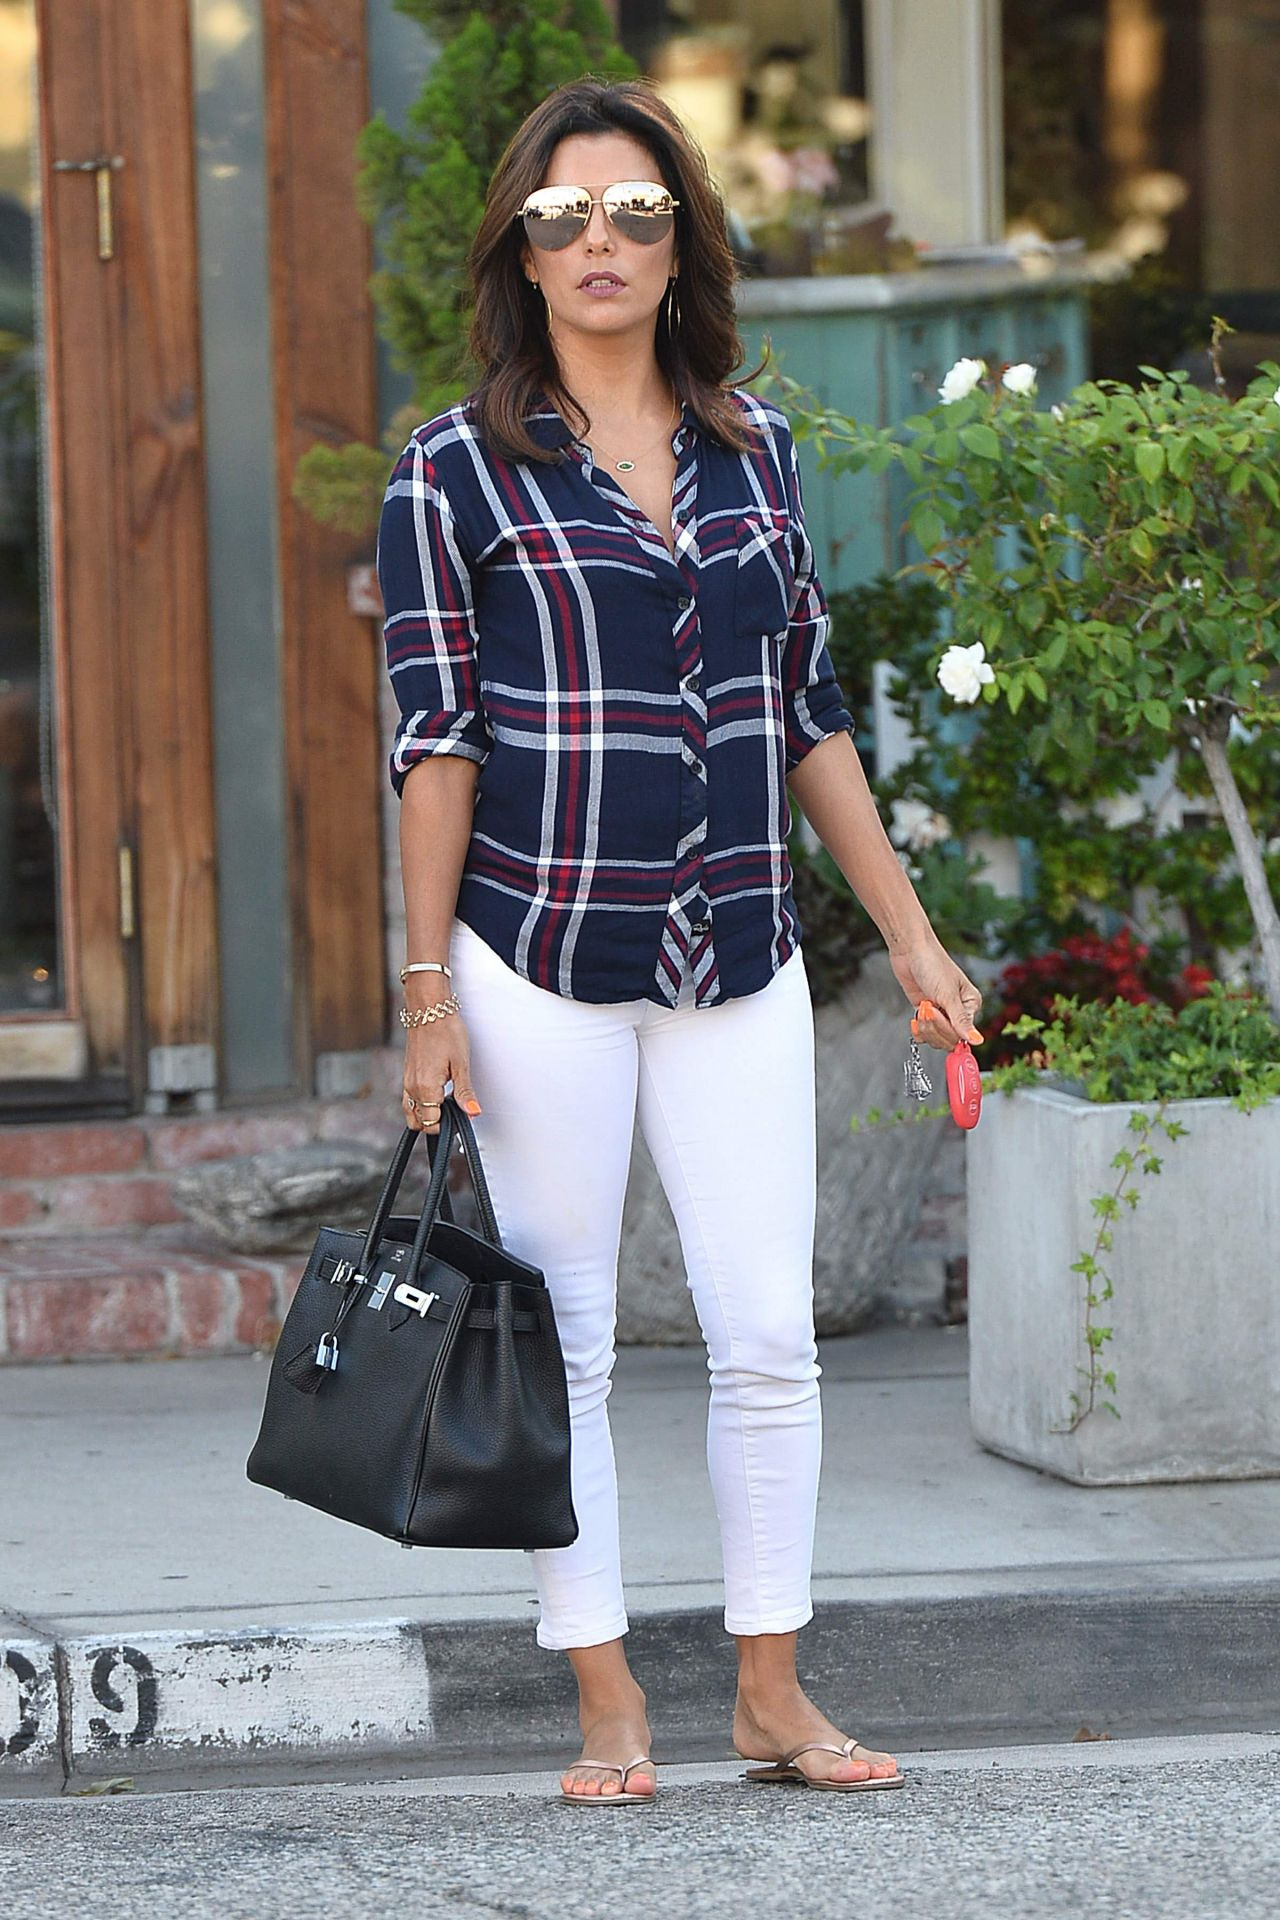 eva-longoria-casual-style-leaves-ken-paves-salon-july-2015_1